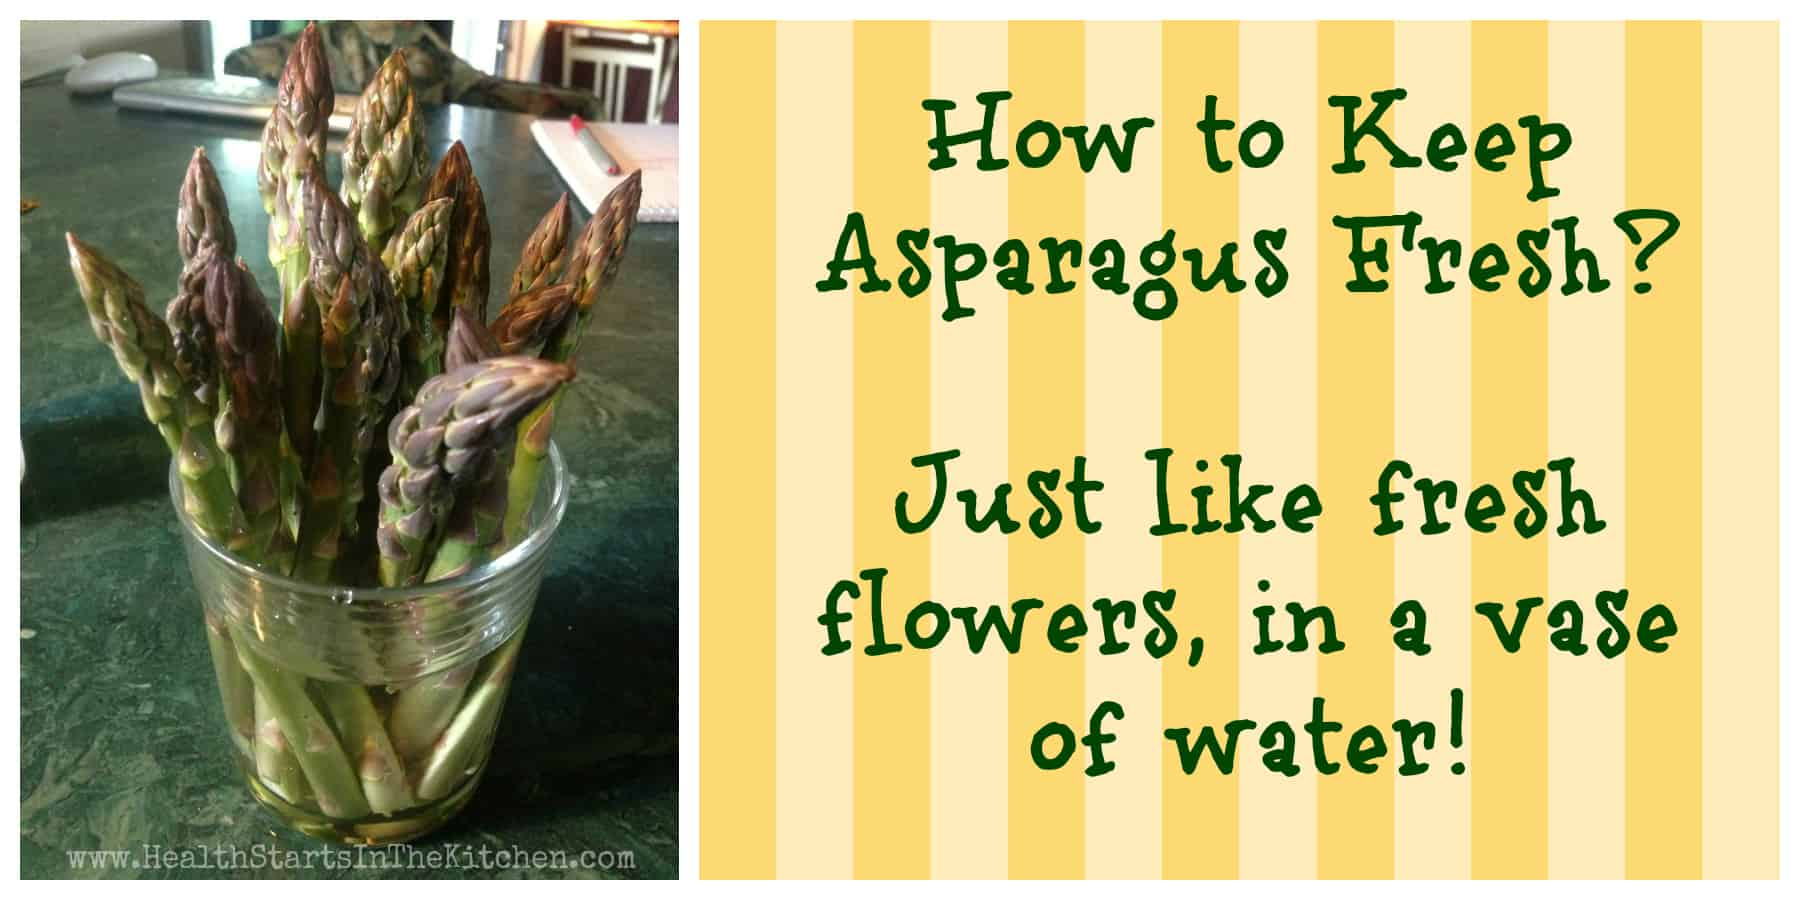 How to Keep Asparagus Fresh!